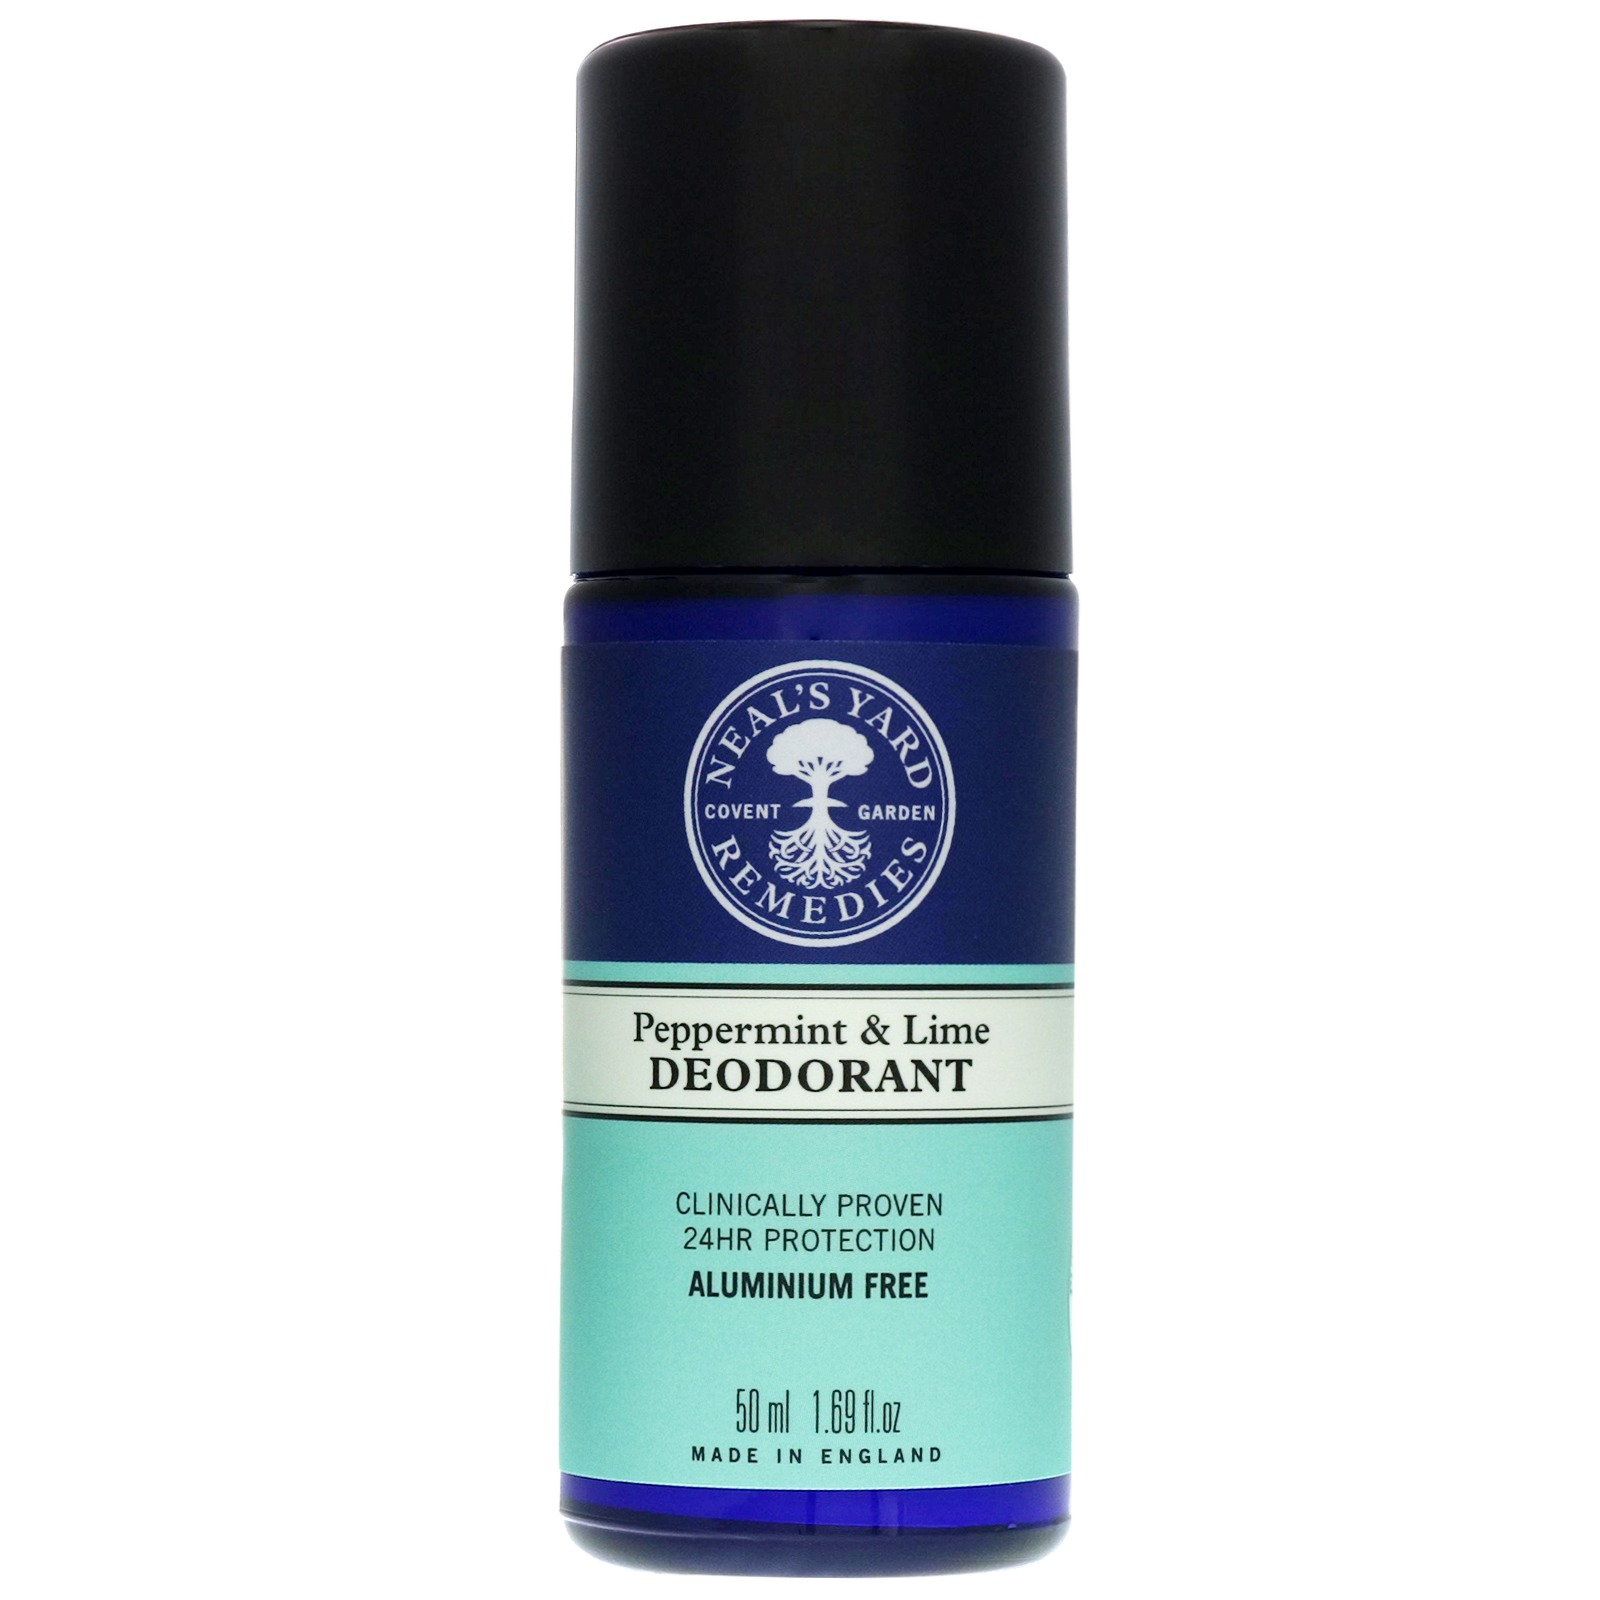 Neal's Yard Remedies Deodorant Peppermint & Lime Roll-On Deodorant 50ml